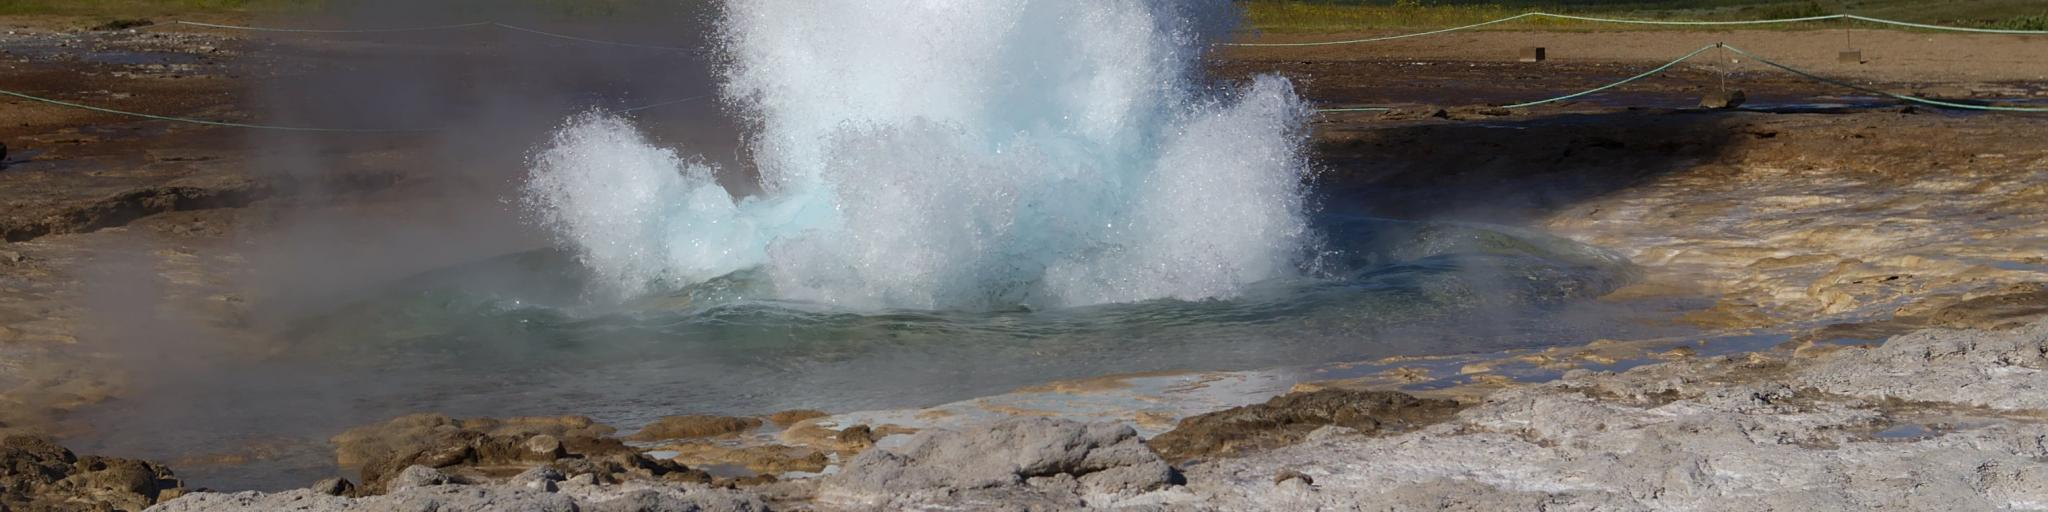 The famously lively Strokkur Geysir erupts with water